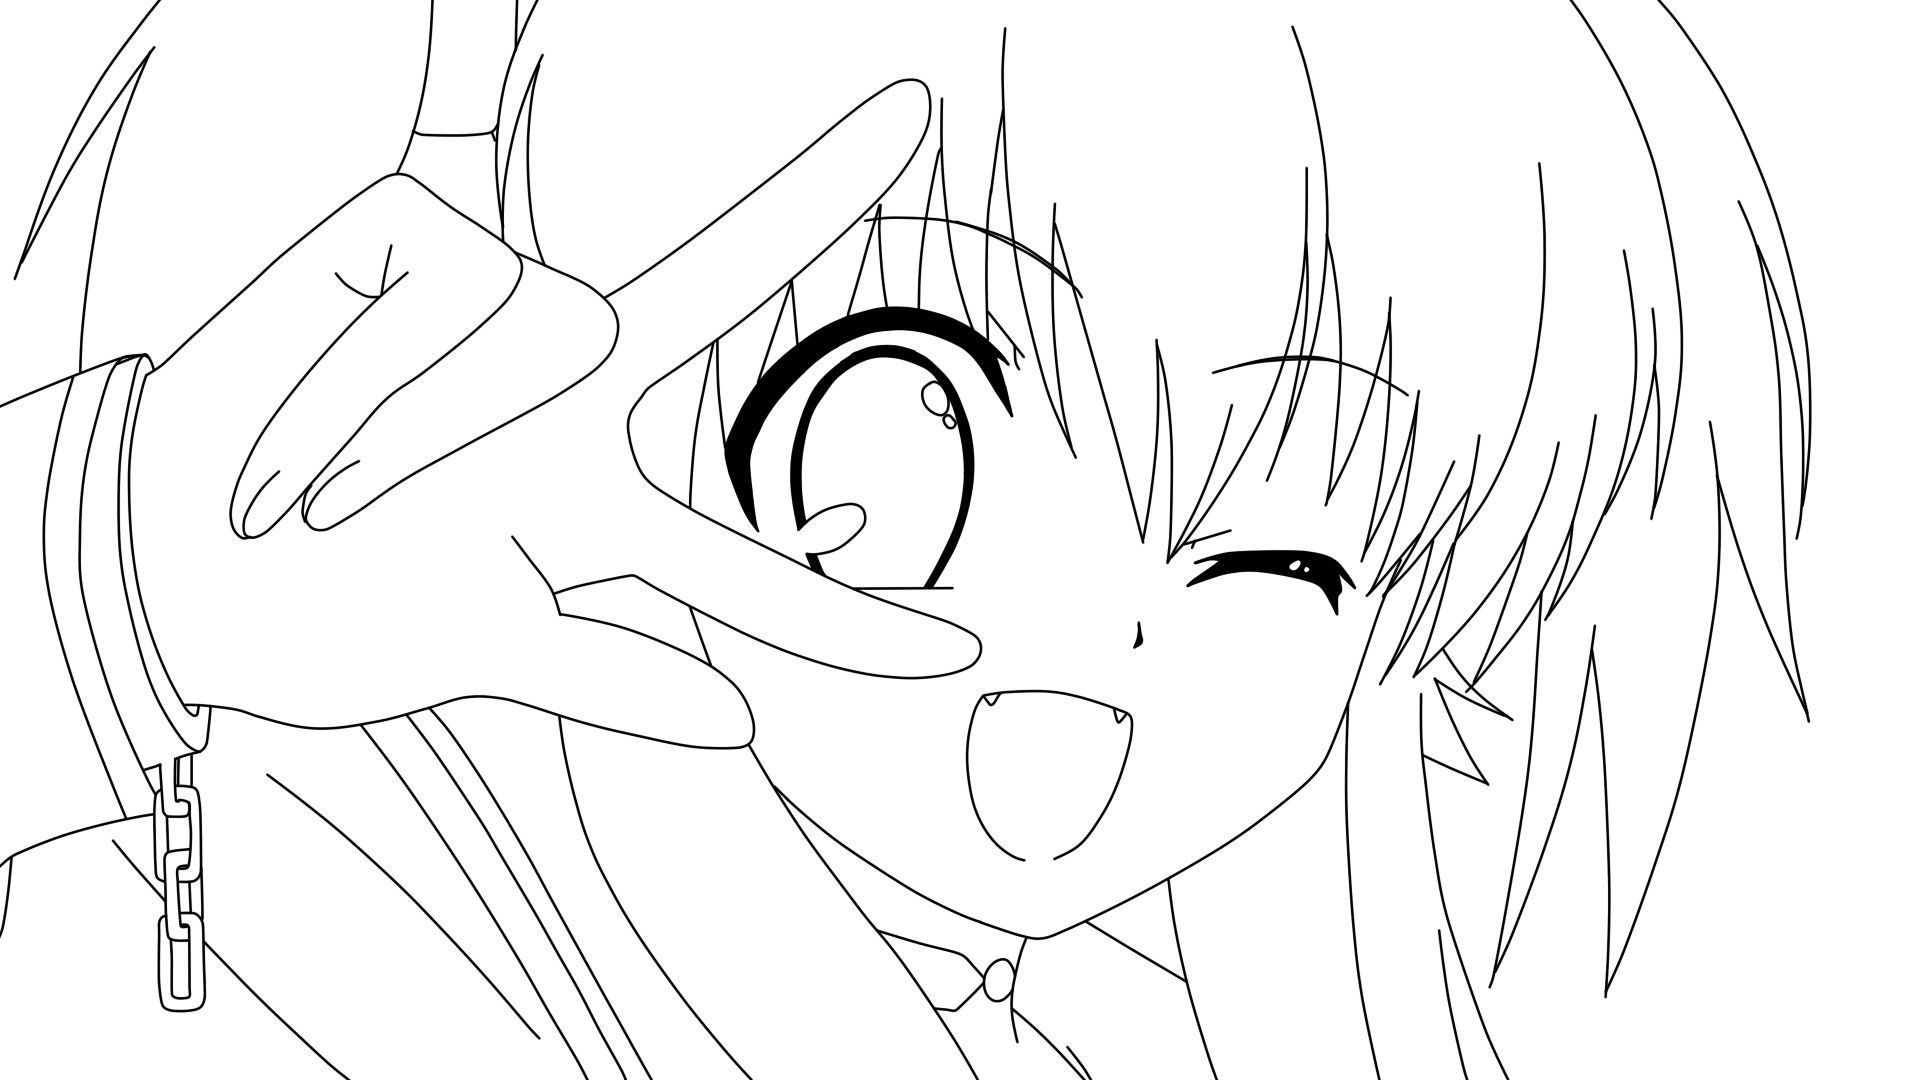 anime vampire coloring pages vampire anime coloring pages at getdrawings free download coloring anime vampire pages